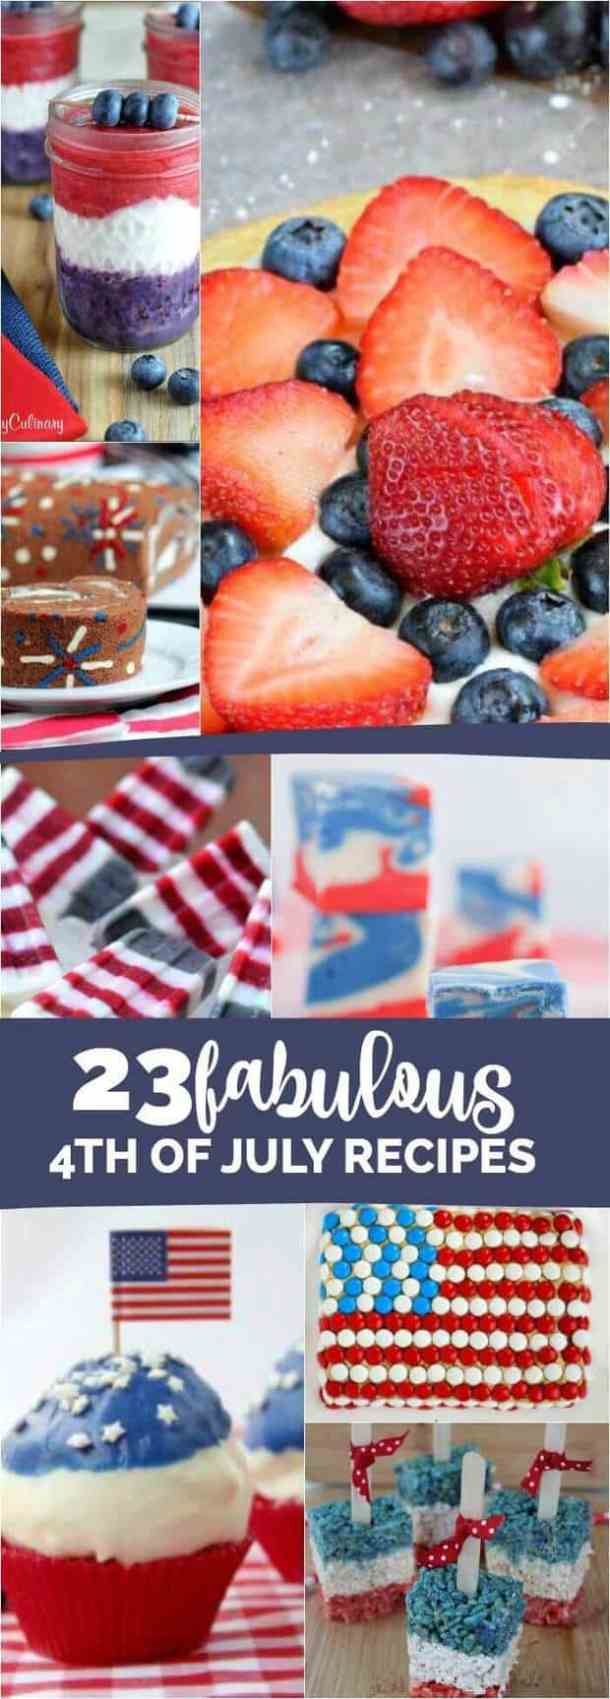 23 Fabulous 4th of July Recipes